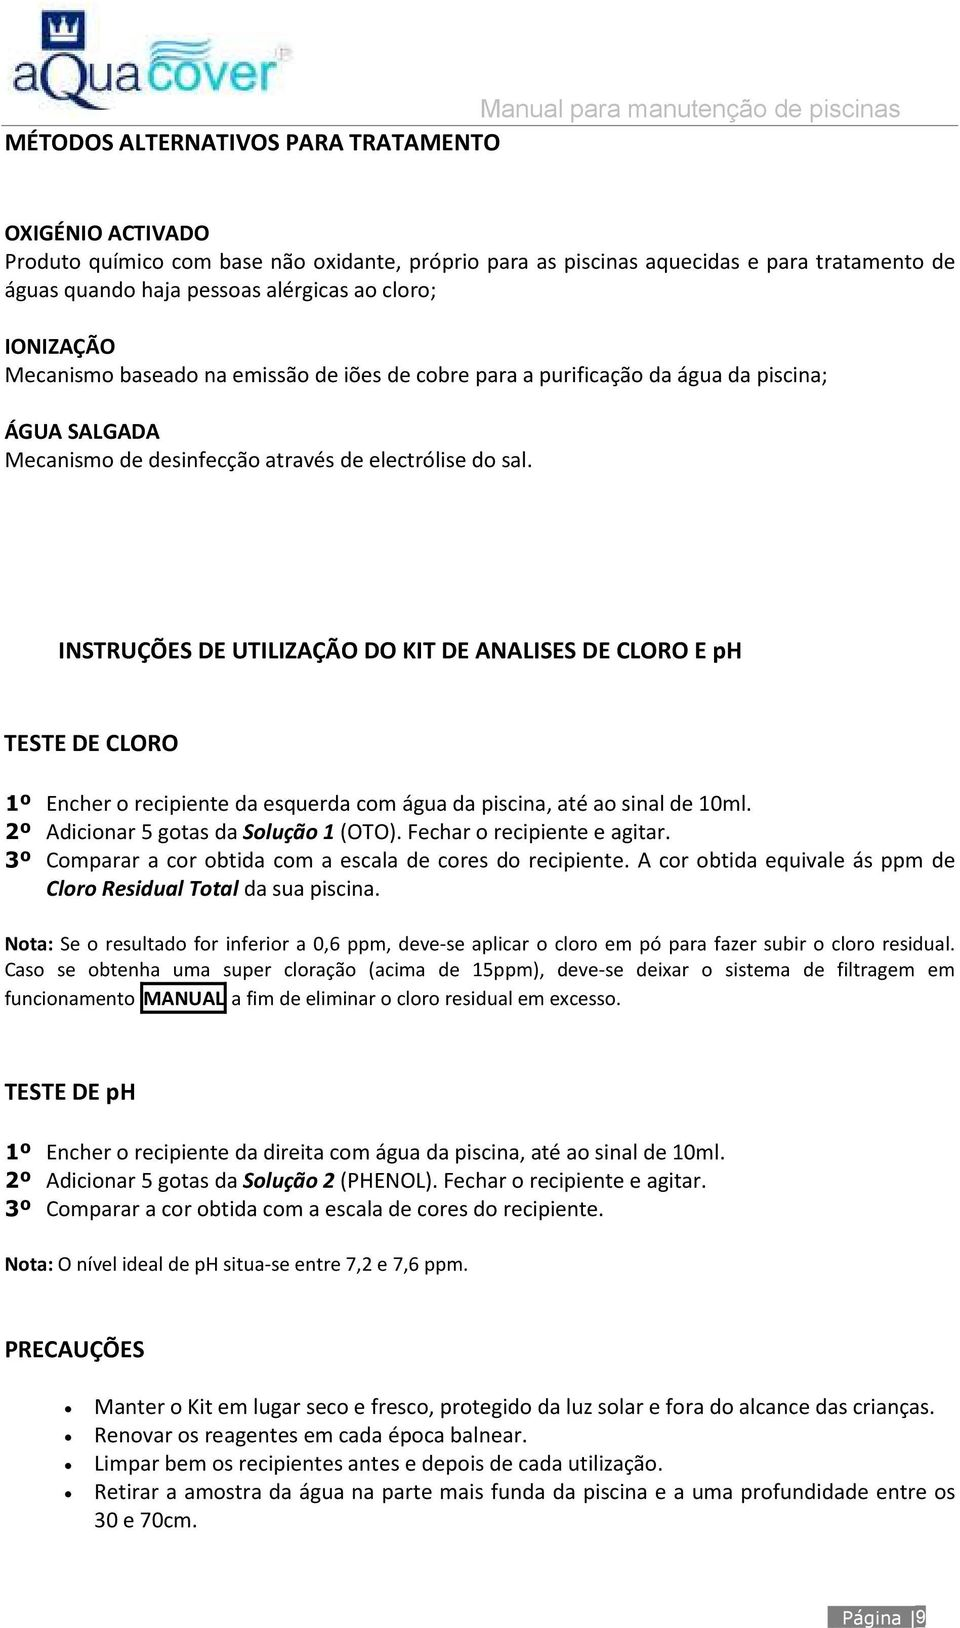 Manual para manuten o de piscinas pdf for Manual de construccion de piscinas pdf